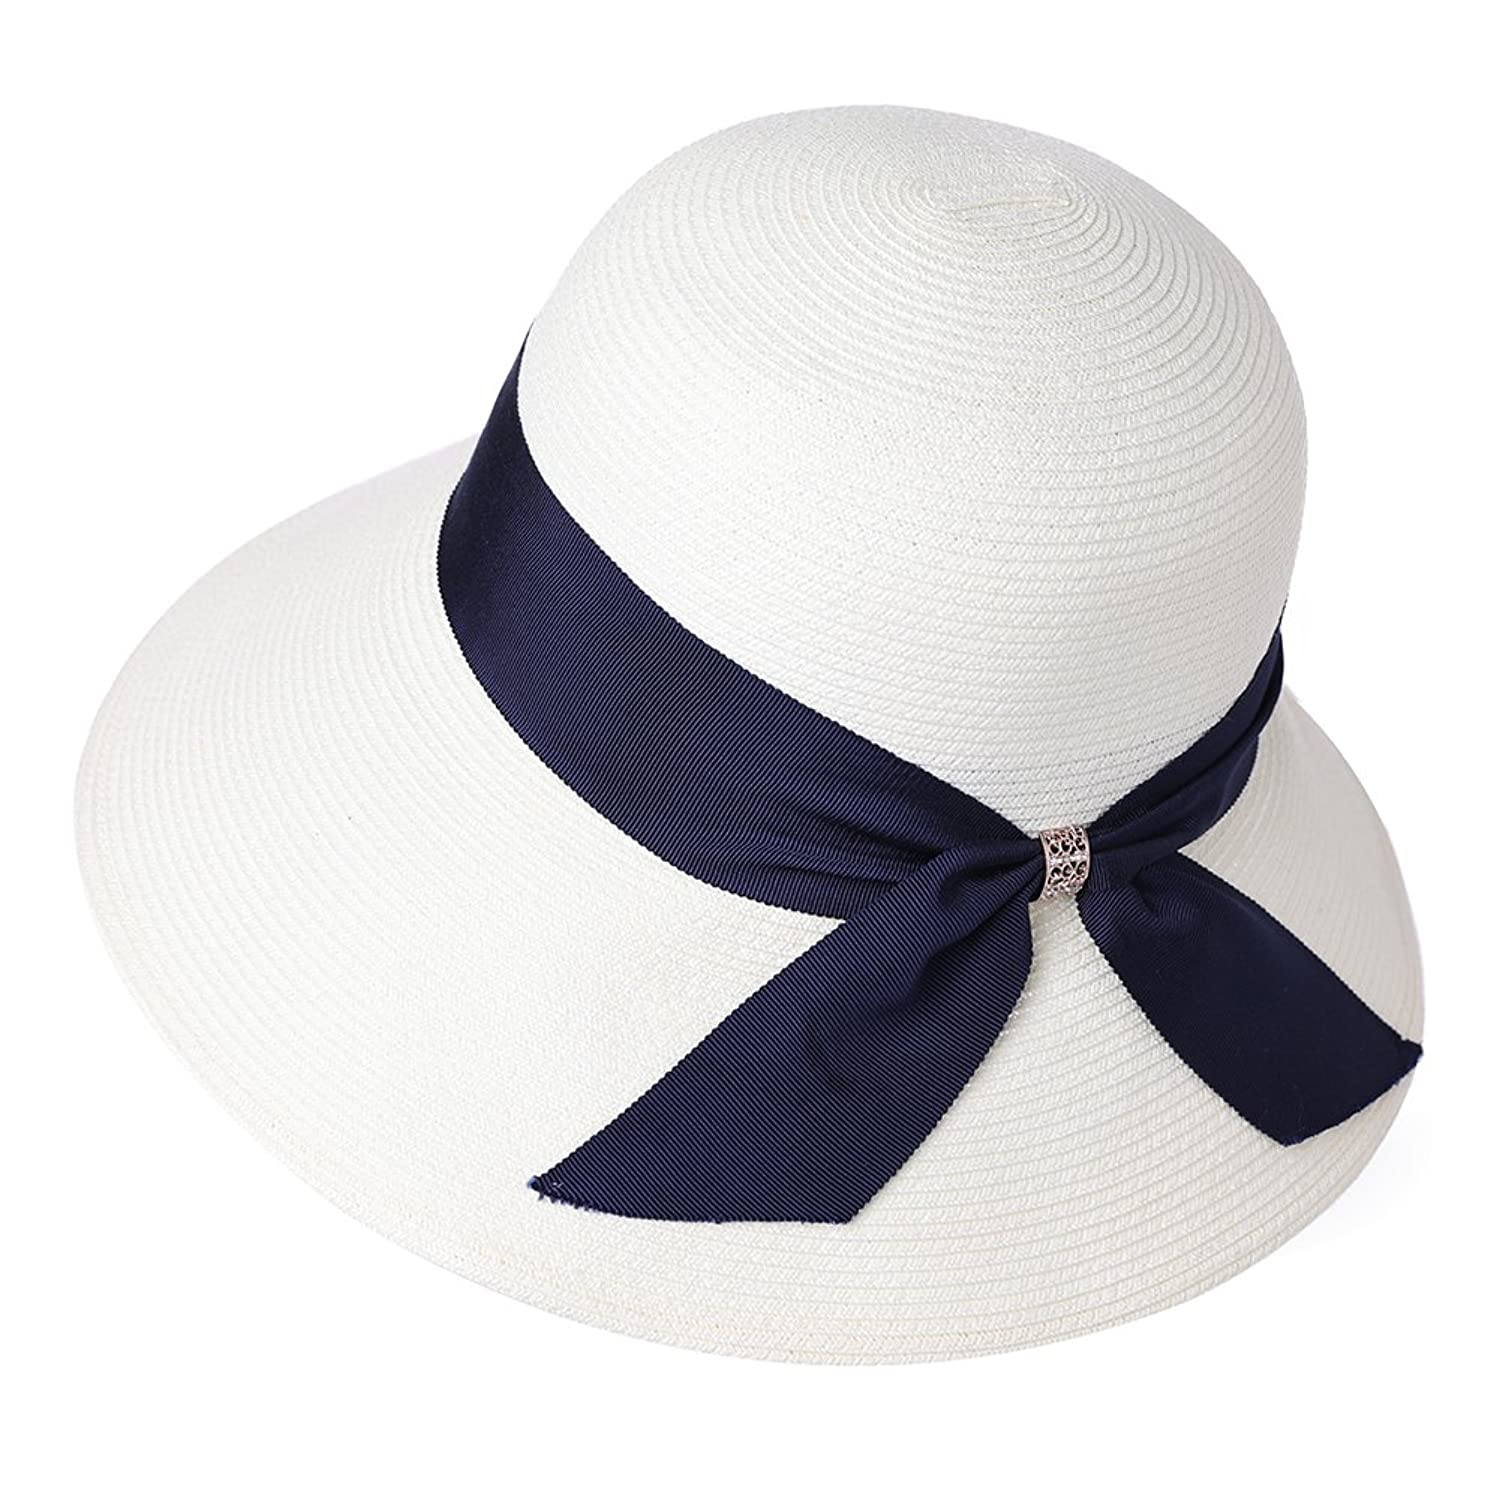 1930s Style Hats | 30s Ladies Hats SiggiHat Packable UPF Straw Sunhat Women Summer Beach Wide Brim Fedora Travel Hat Bowknot $19.99 AT vintagedancer.com